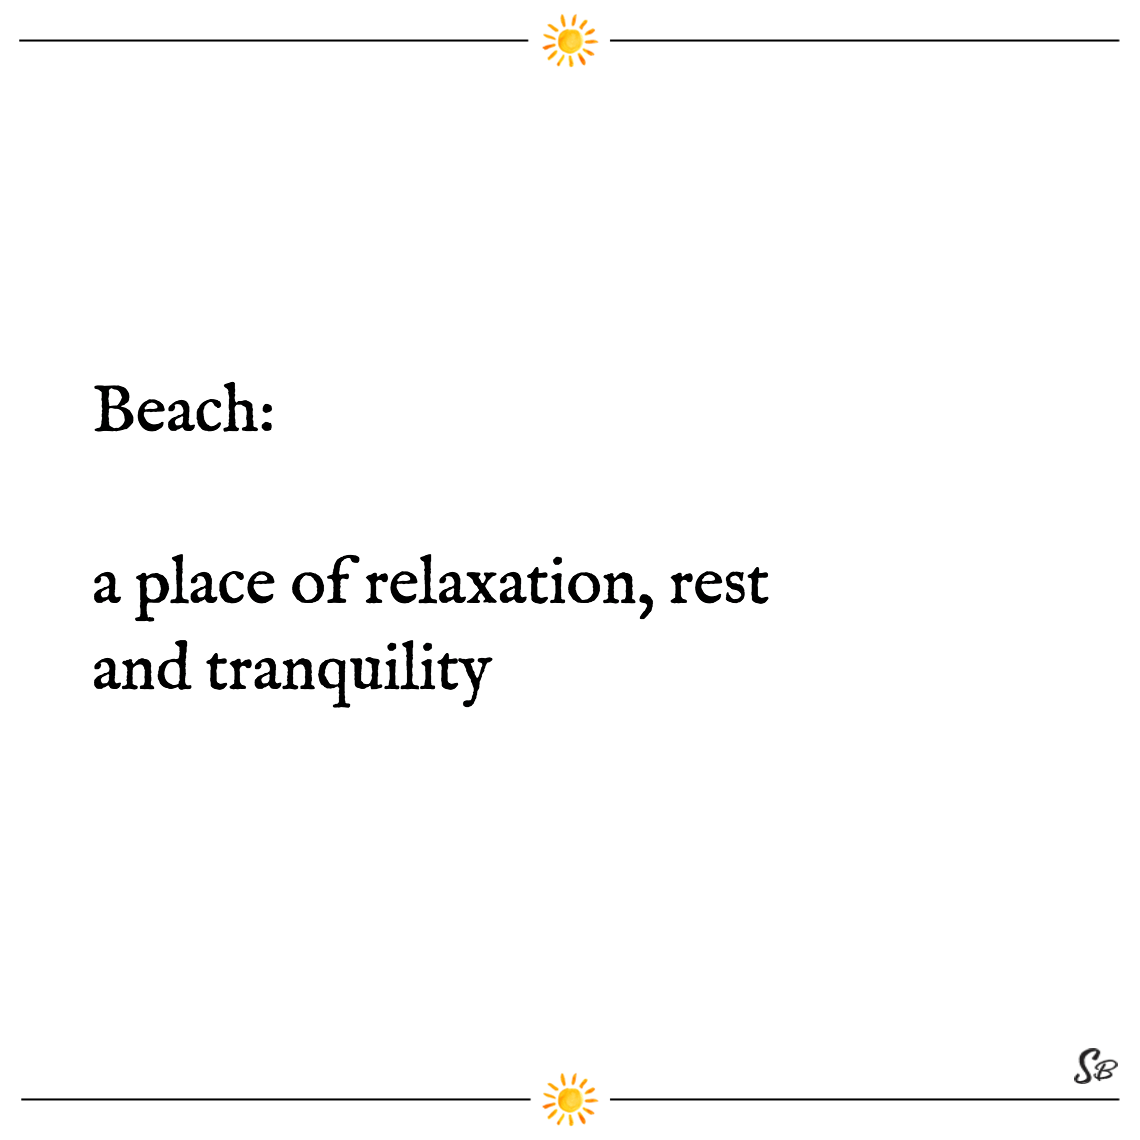 Beach a place of relaxation, rest and tranquility